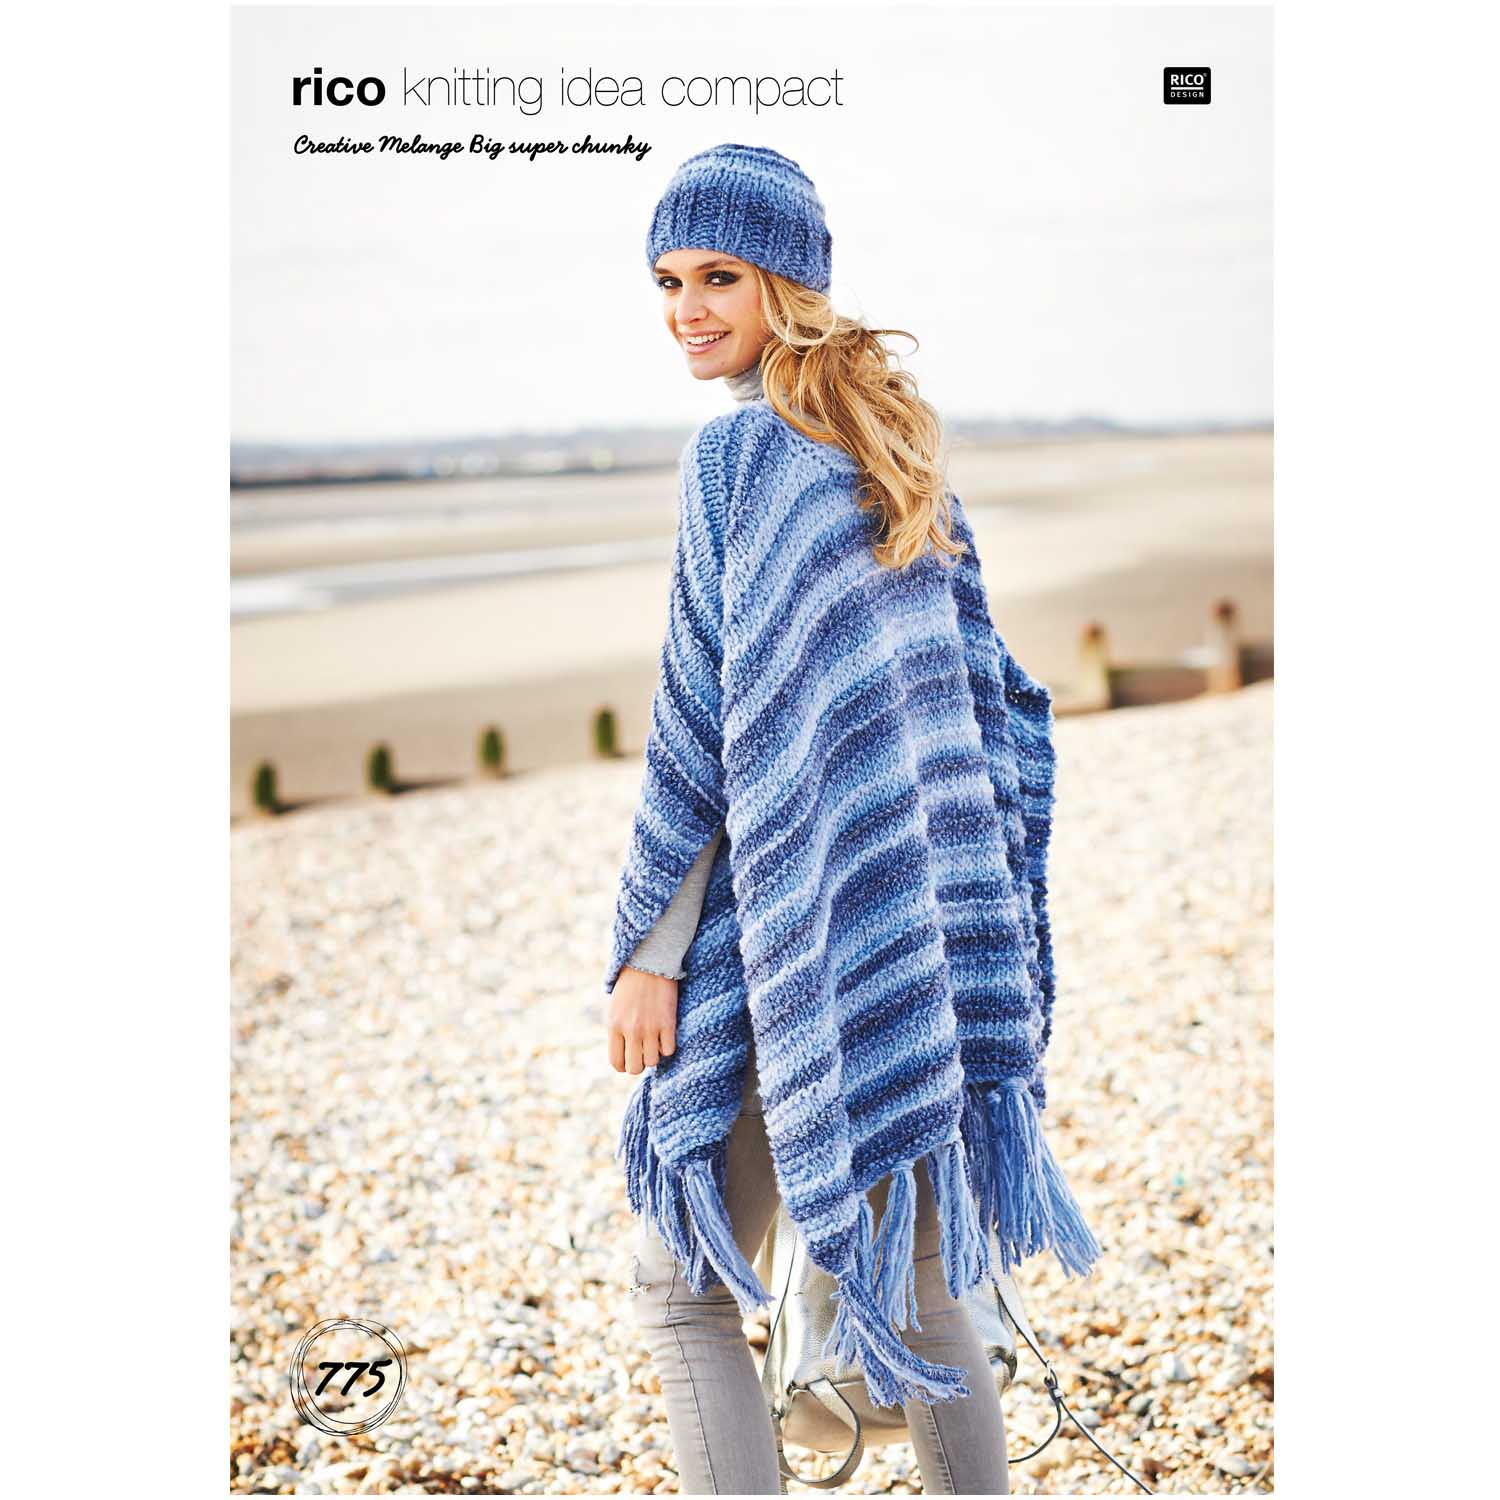 Poncho Knitting Pattern Chunky Rico Ladies Ponchos Hat Knitting Pattern In Creative Melange Big Super Chunky 775